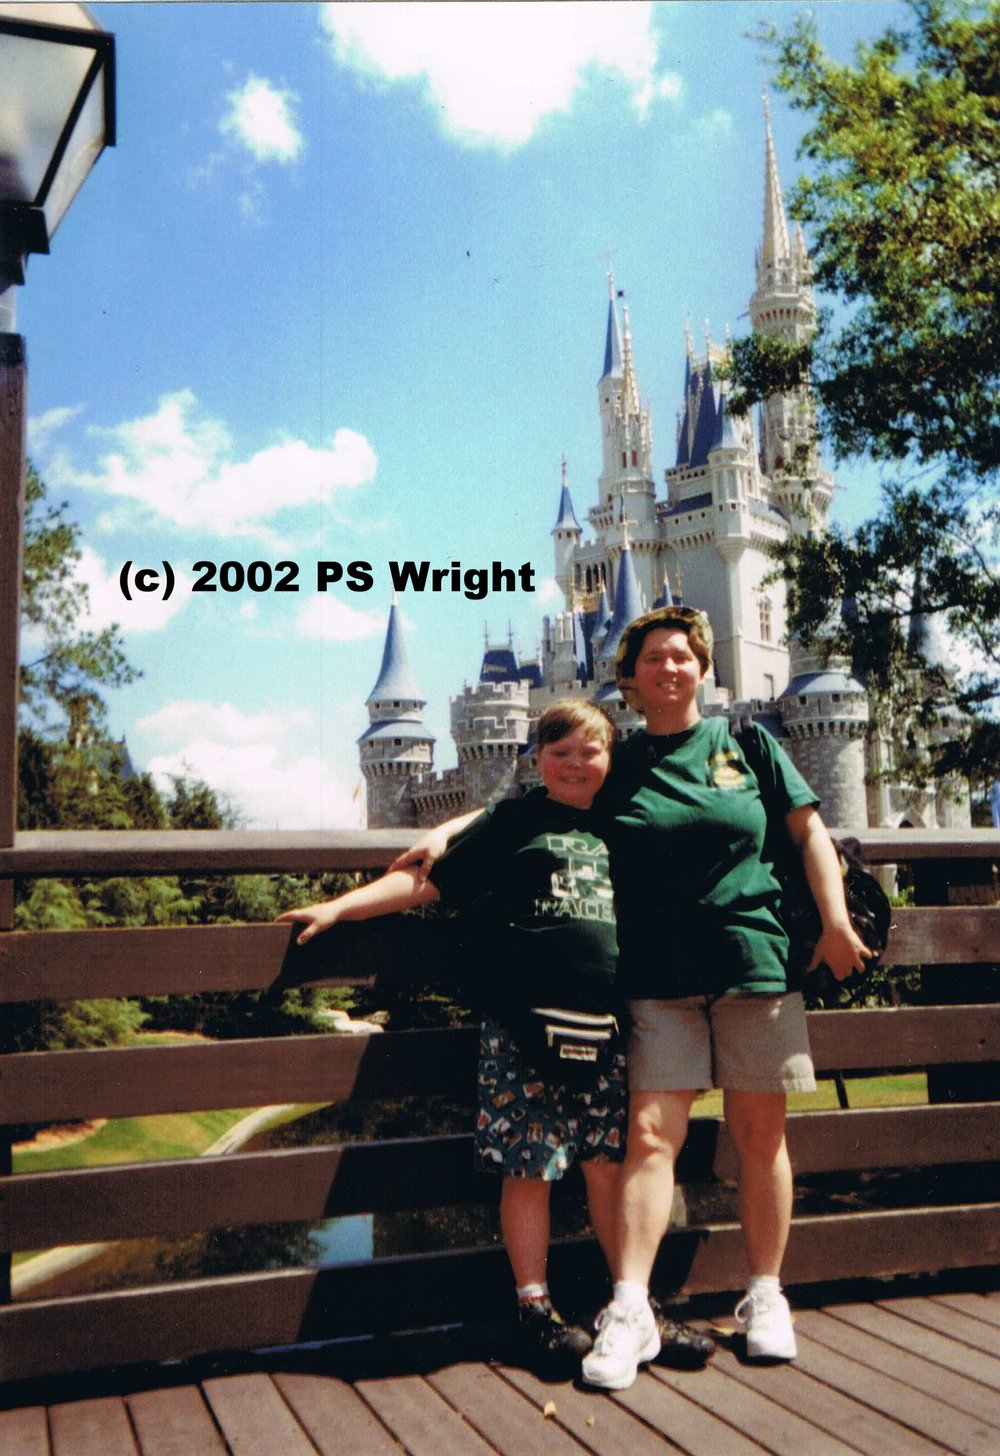 A family photo. (Only if not for sale or redistribution as it contains a themepark icon and logos on both shirts.)